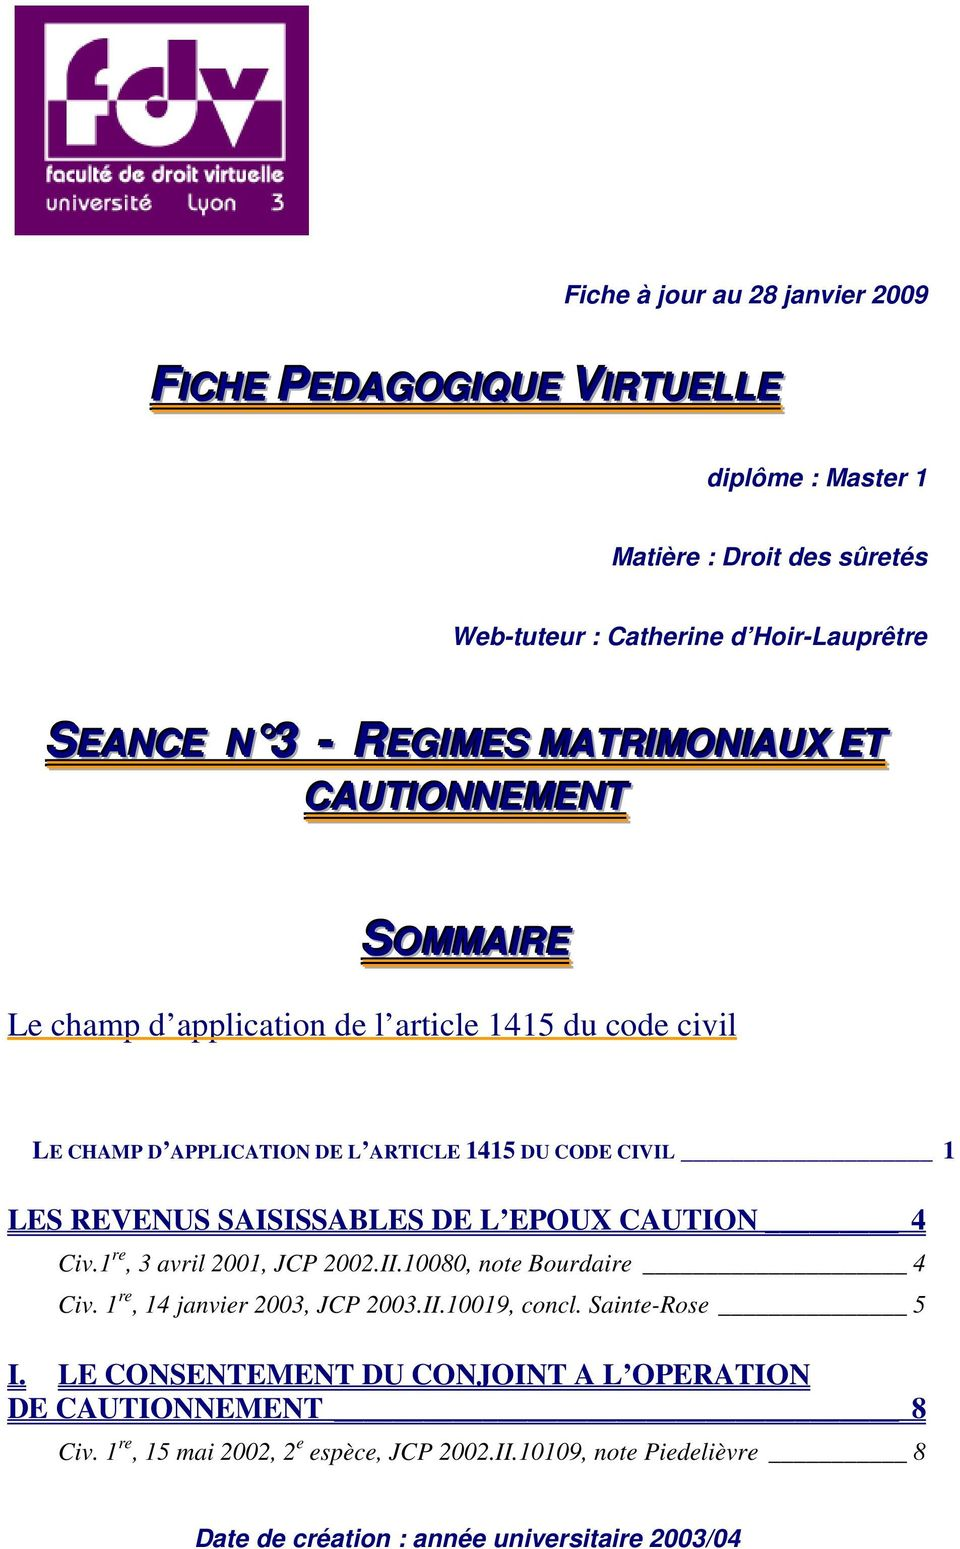 SAISISSABLES DE L EPOUX CAUTION 4 Civ.1 re, 3 avril 2001, JCP 2002.II.10080, note Bourdaire 4 Civ. 1 re, 14 janvier 2003, JCP 2003.II.10019, concl. Sainte-Rose 5 I.